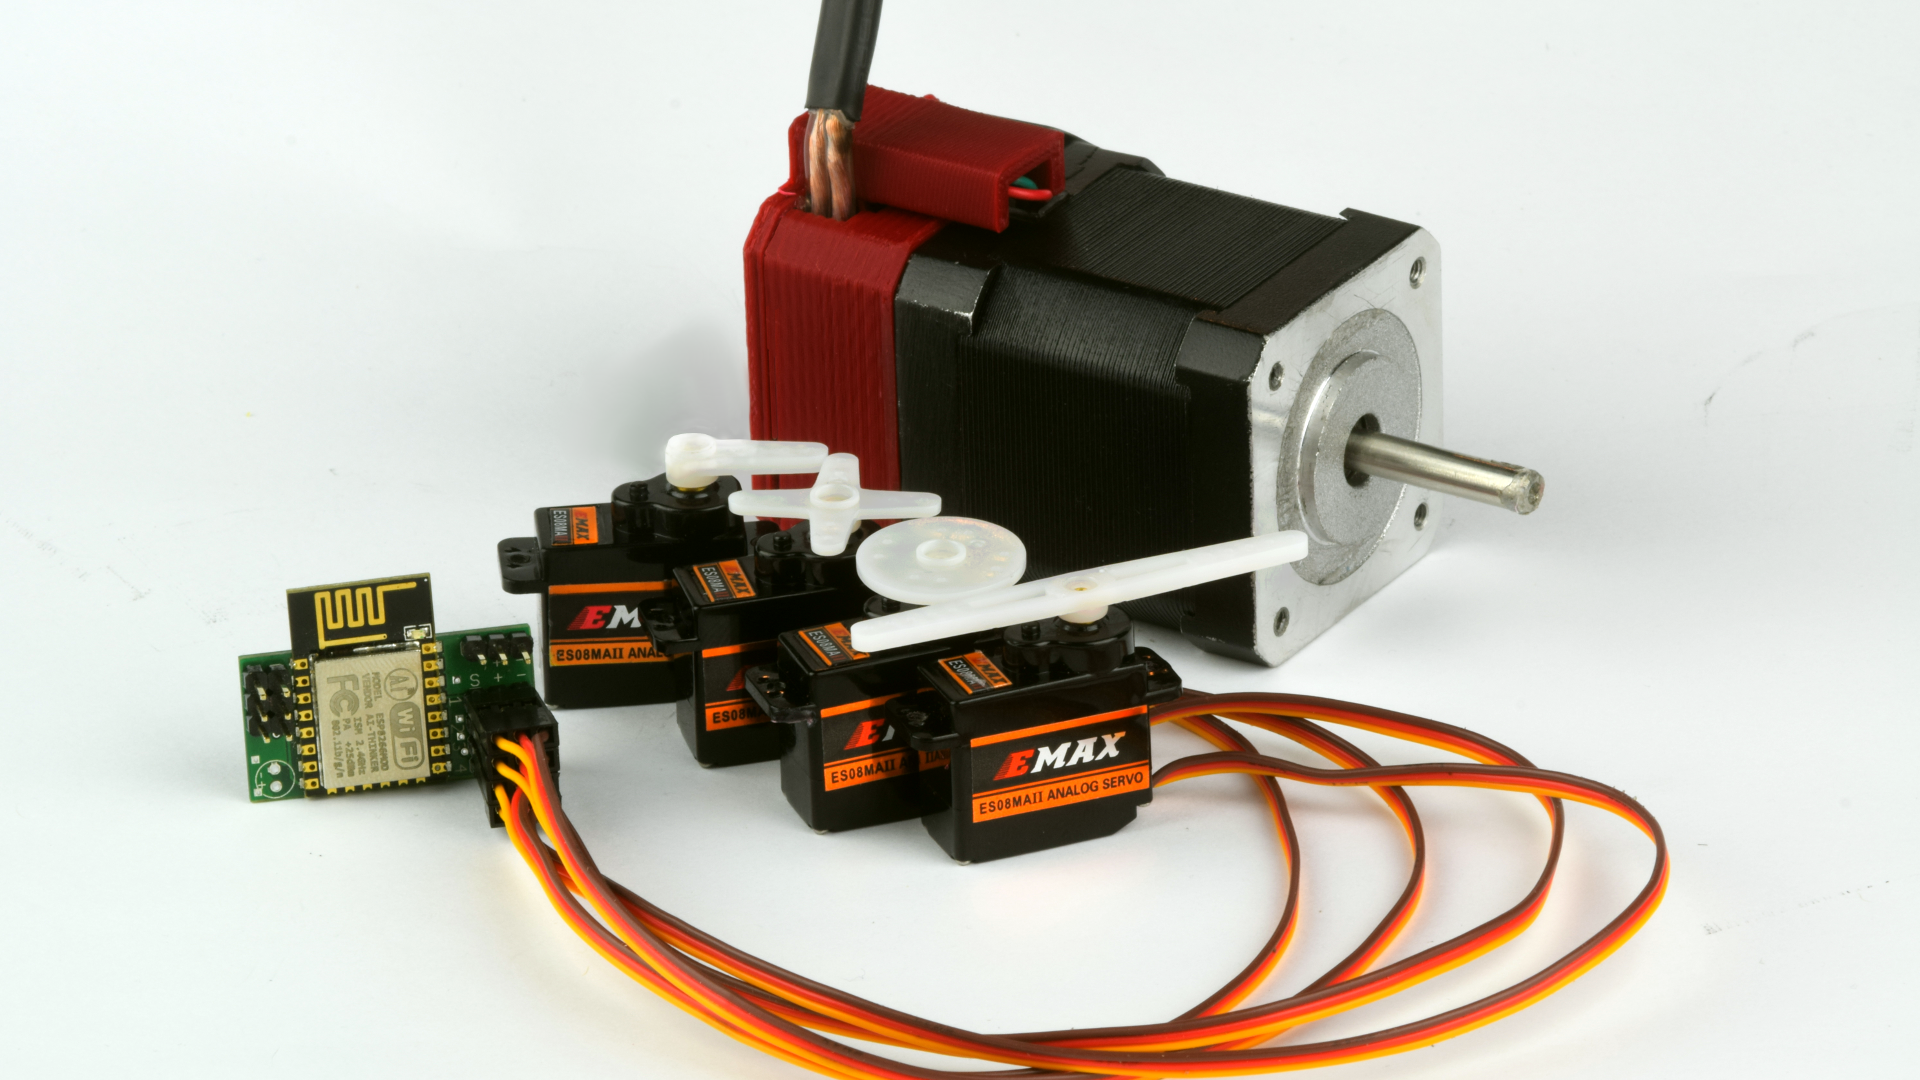 WiFi Motors That Will Take the Mess and Stress Out of Your Projects